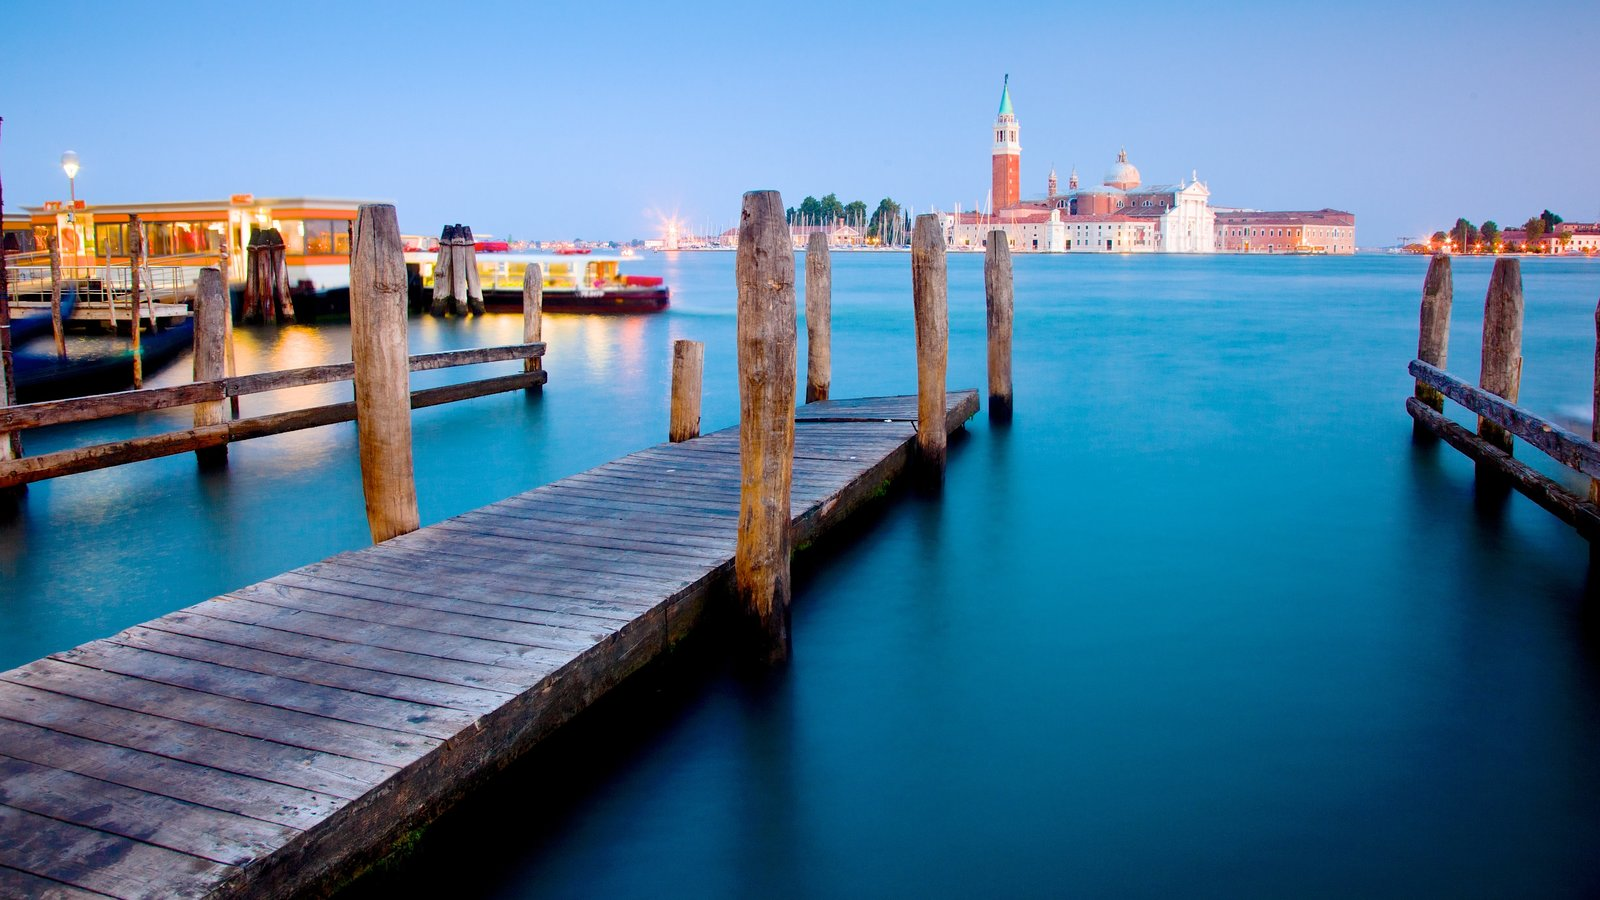 Church of San Giorgio Maggiore featuring a church or cathedral, a bay or harbour and religious elements